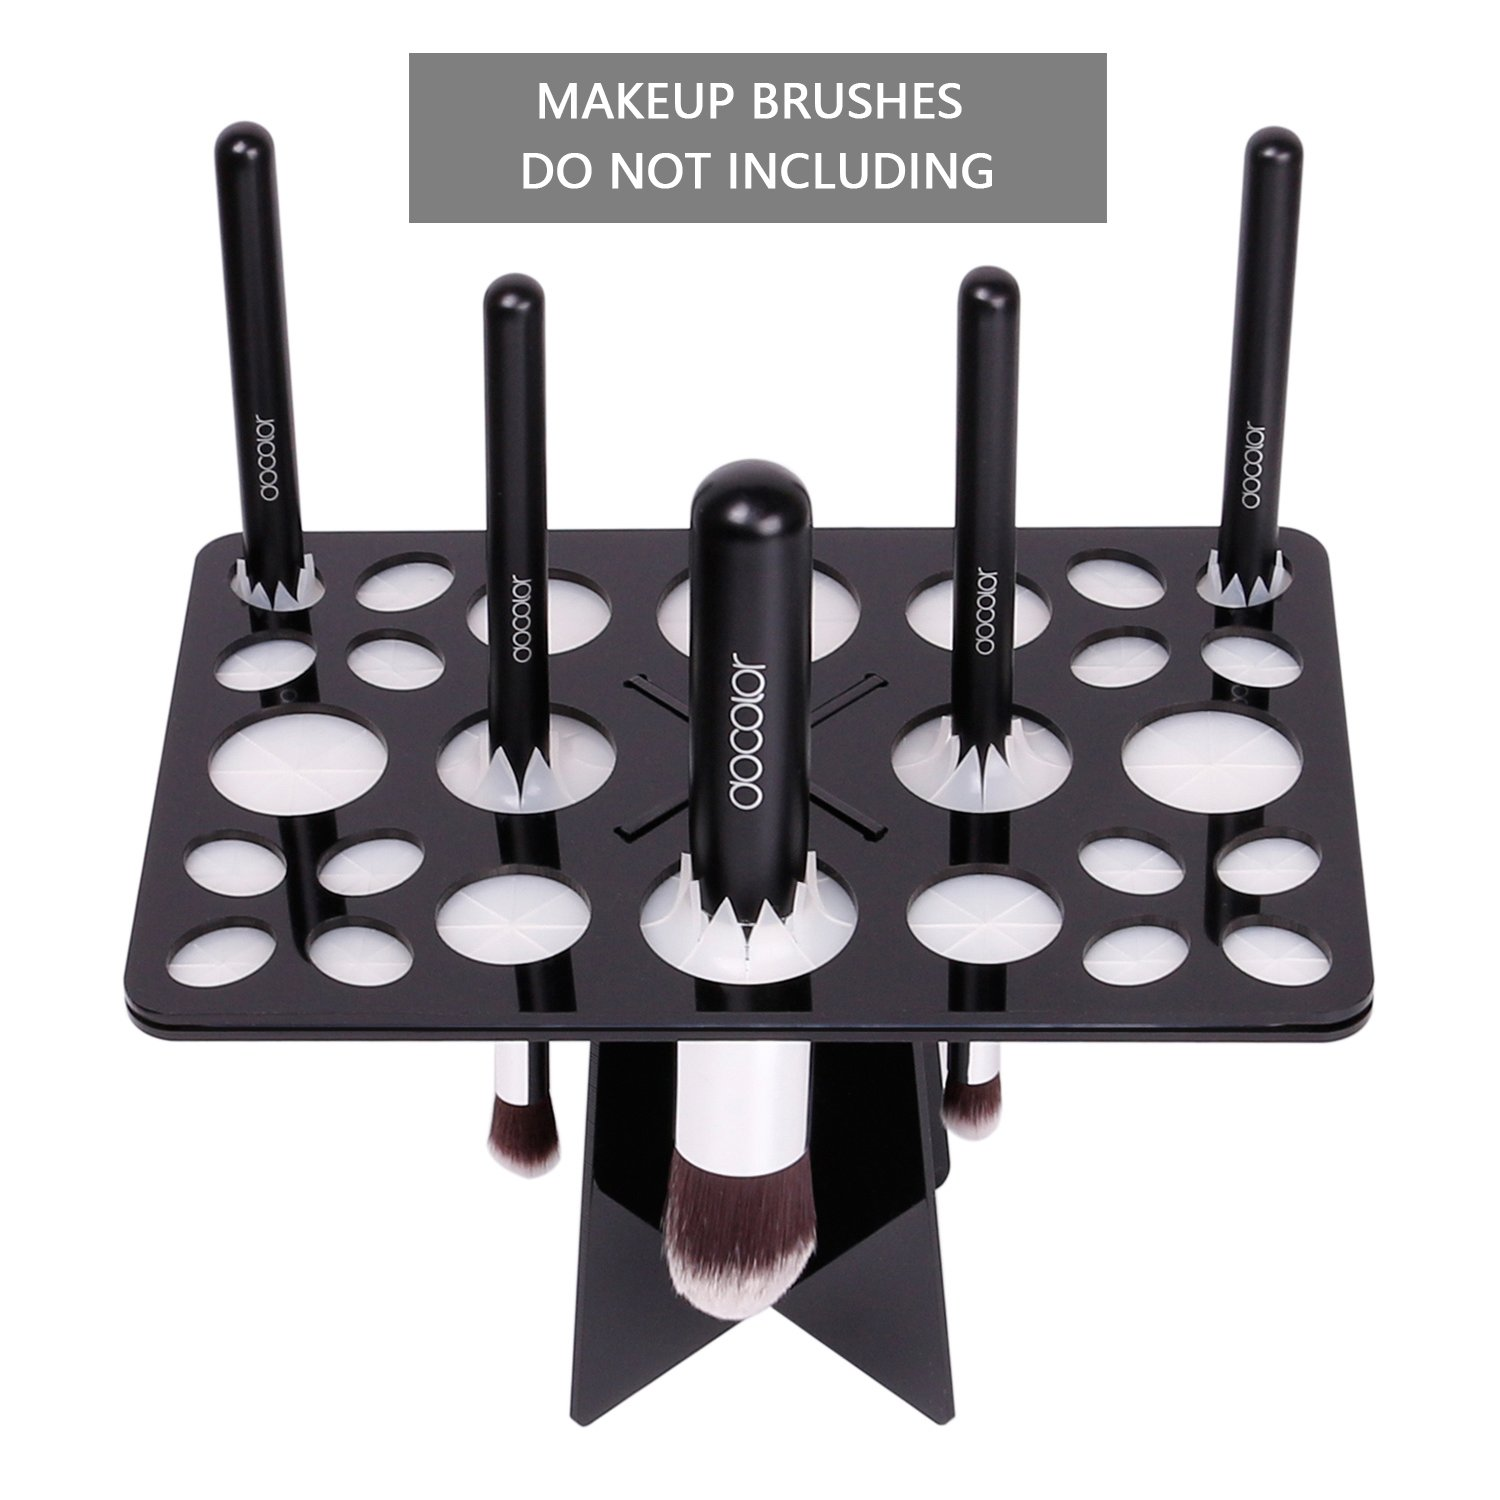 Docolor Makeup Brush Drying Rack